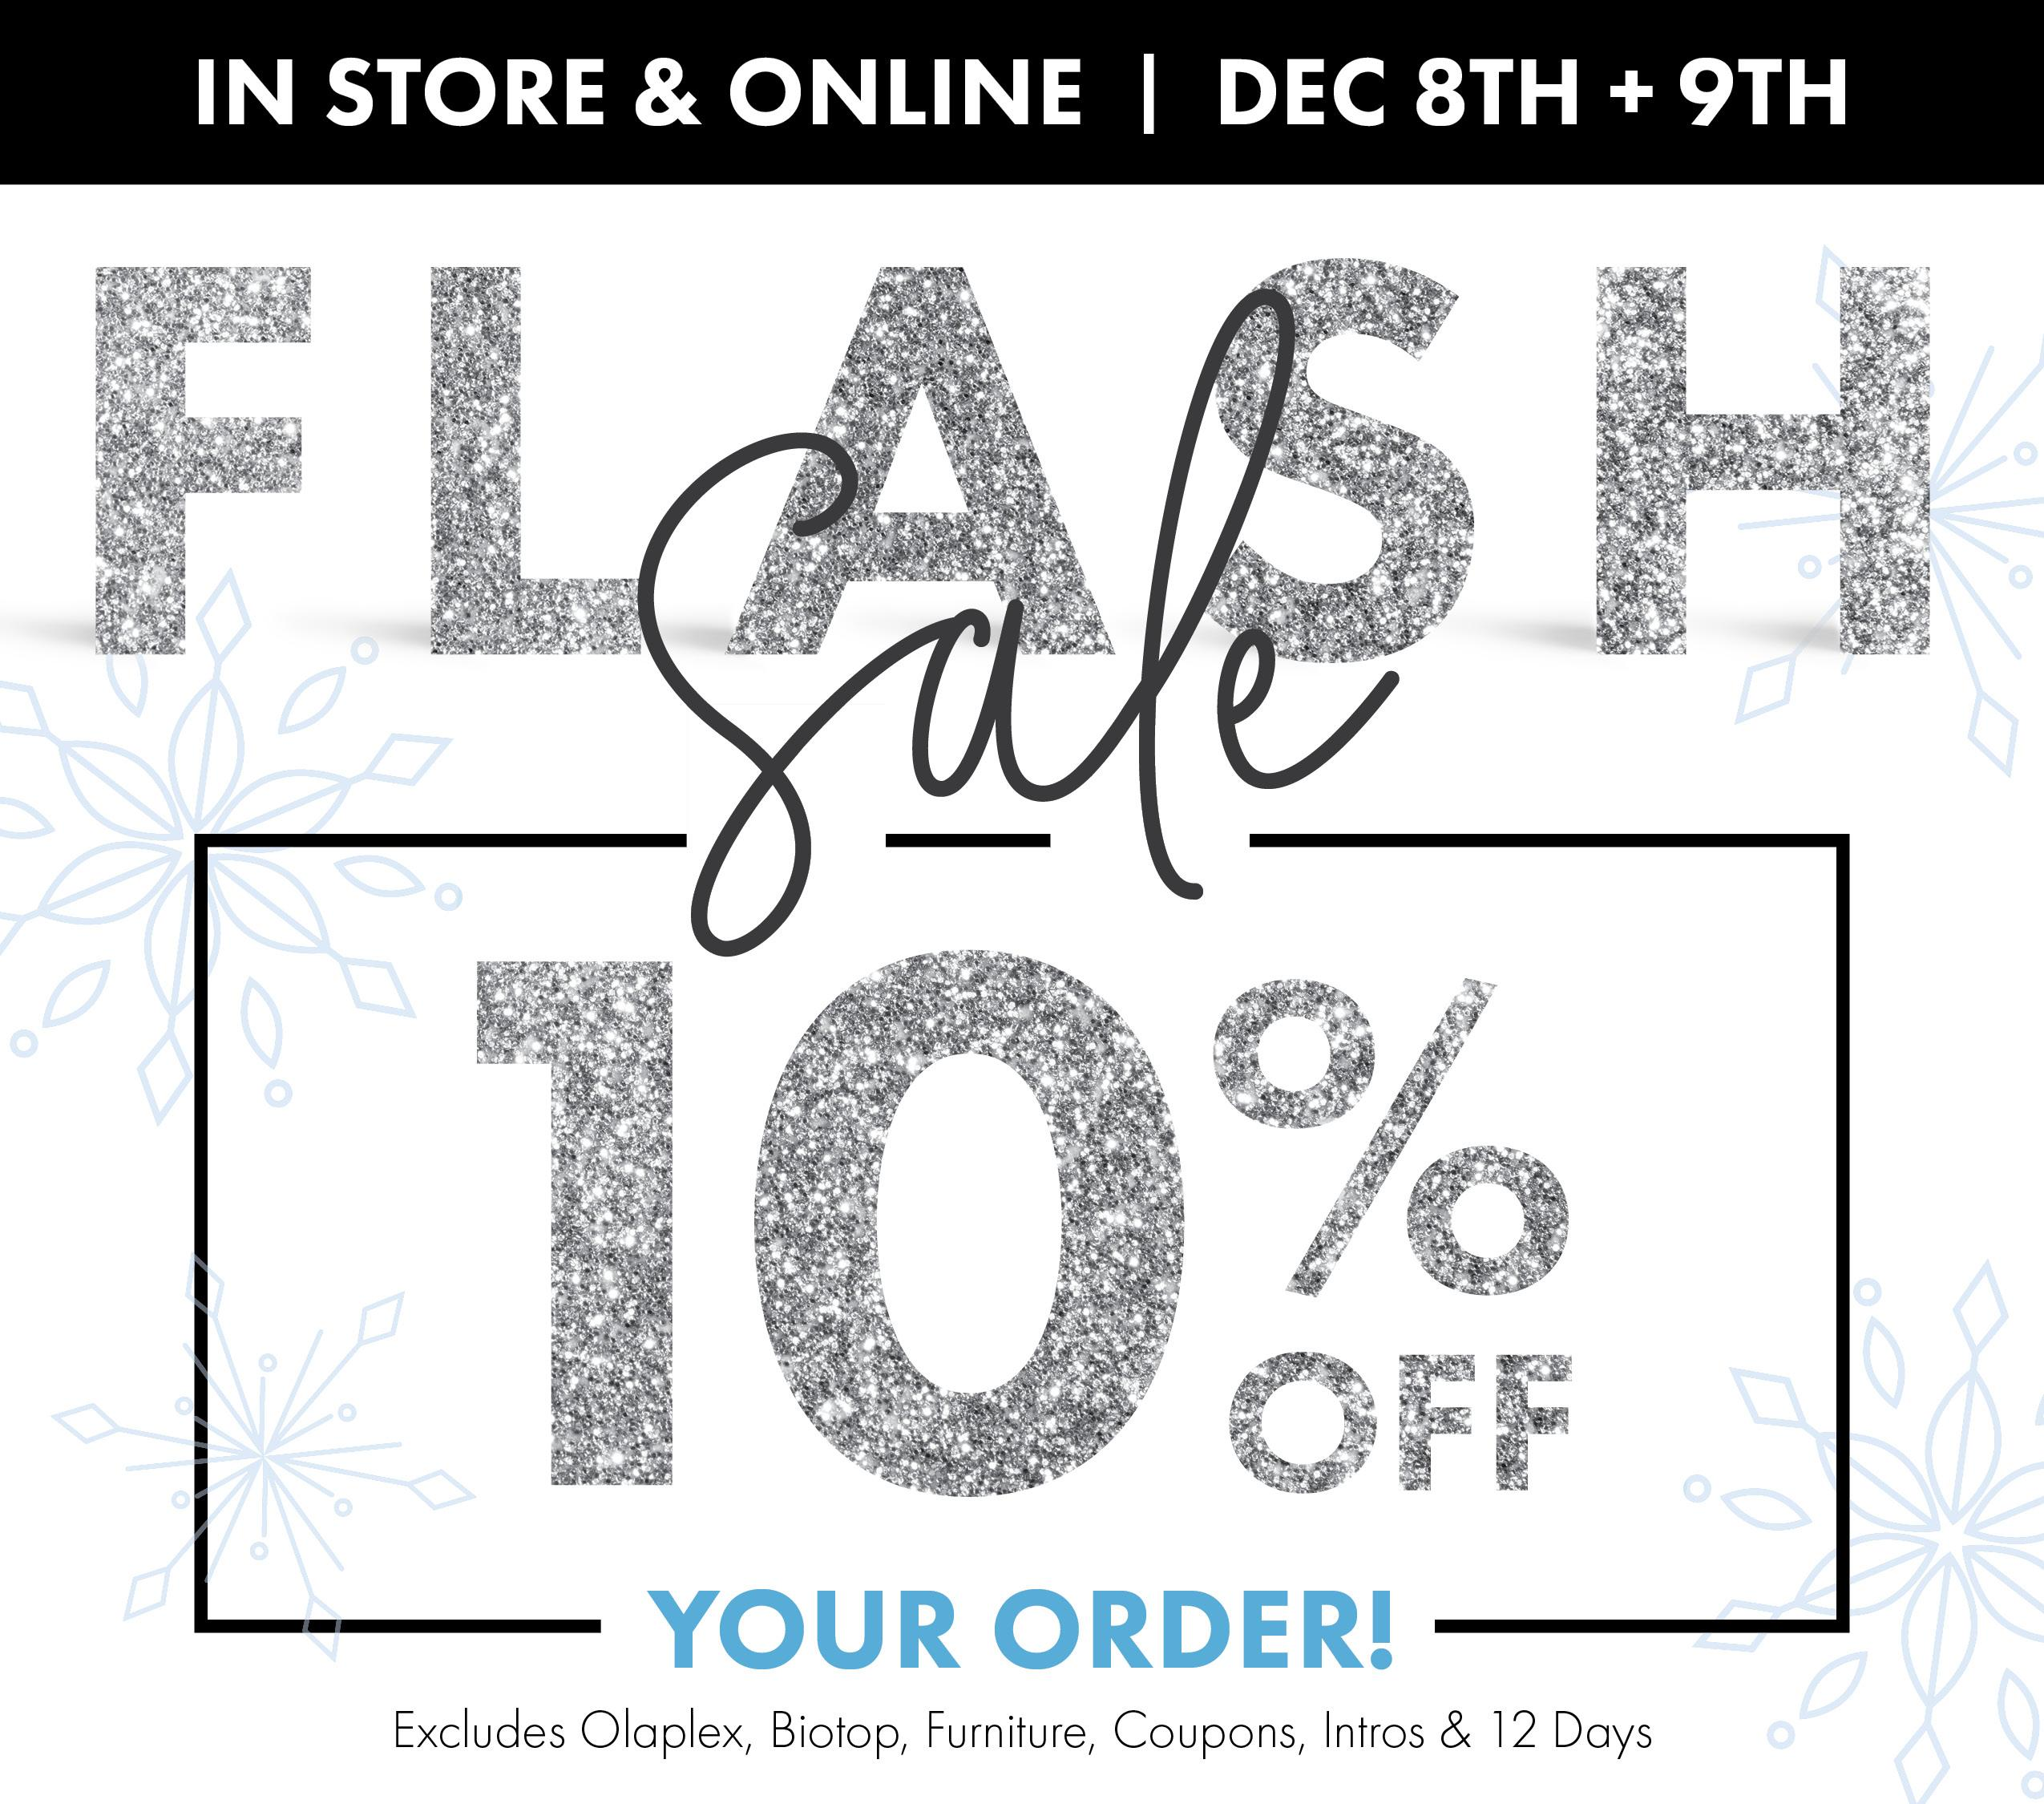 Flash Sale Pop Up1